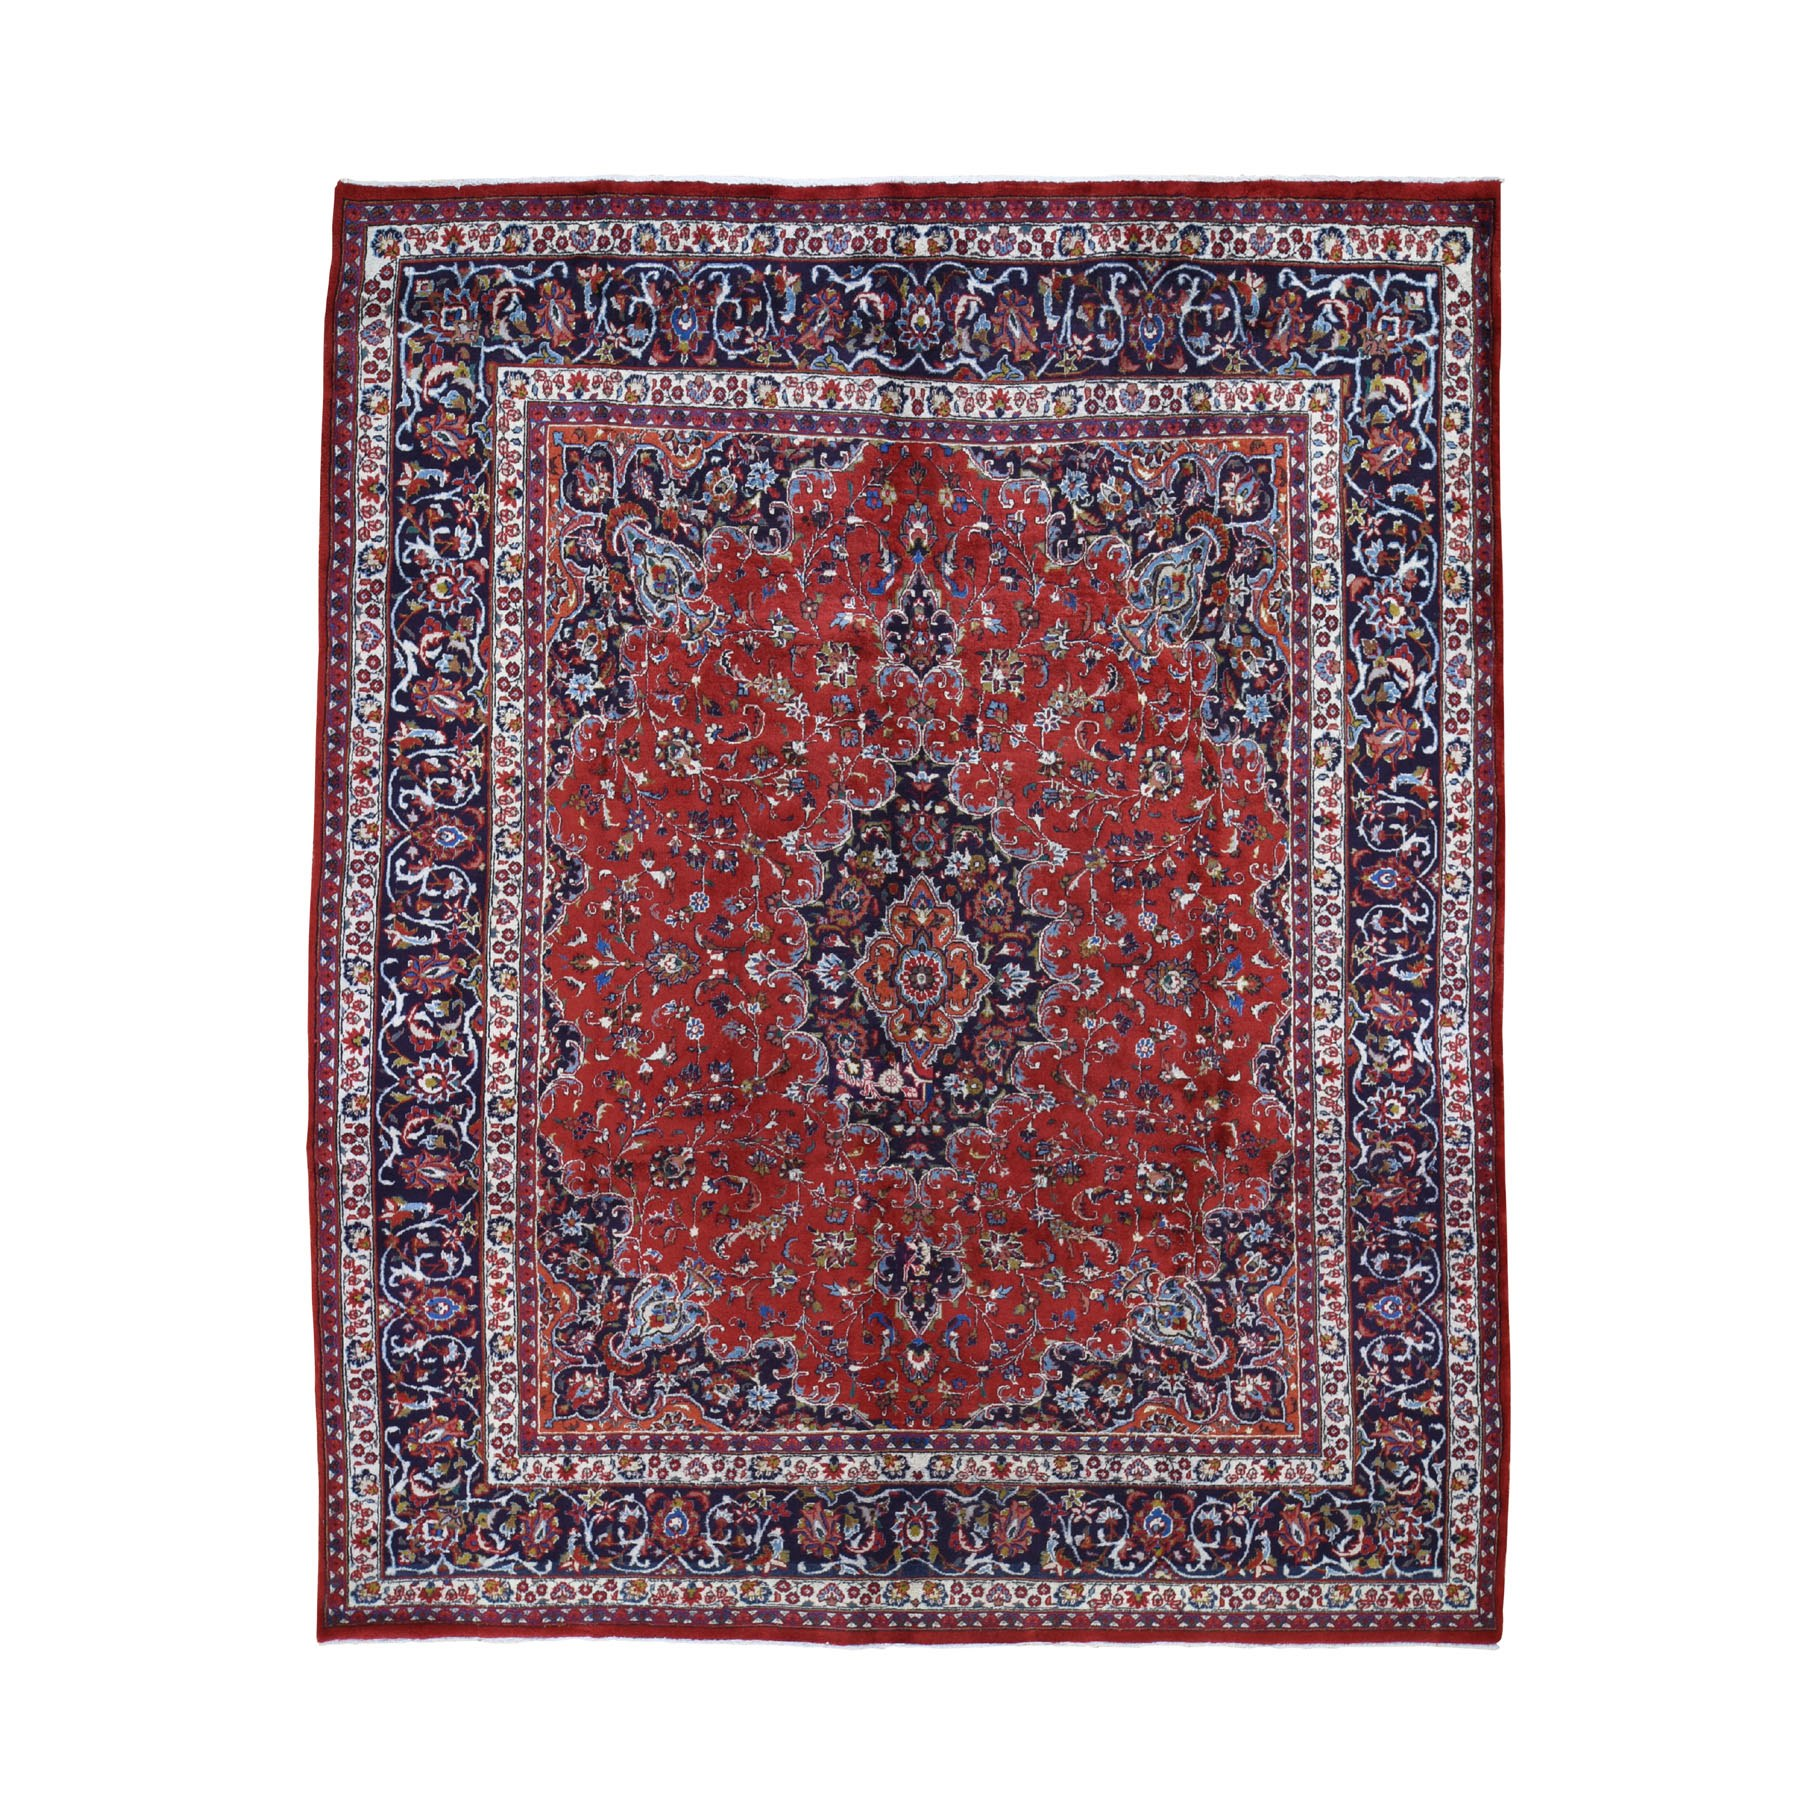 "8'1""X10'5"" Red Vintage Mashad Pure Wool Full Pile Hand Knotted Oriental Rug moad7d7e"